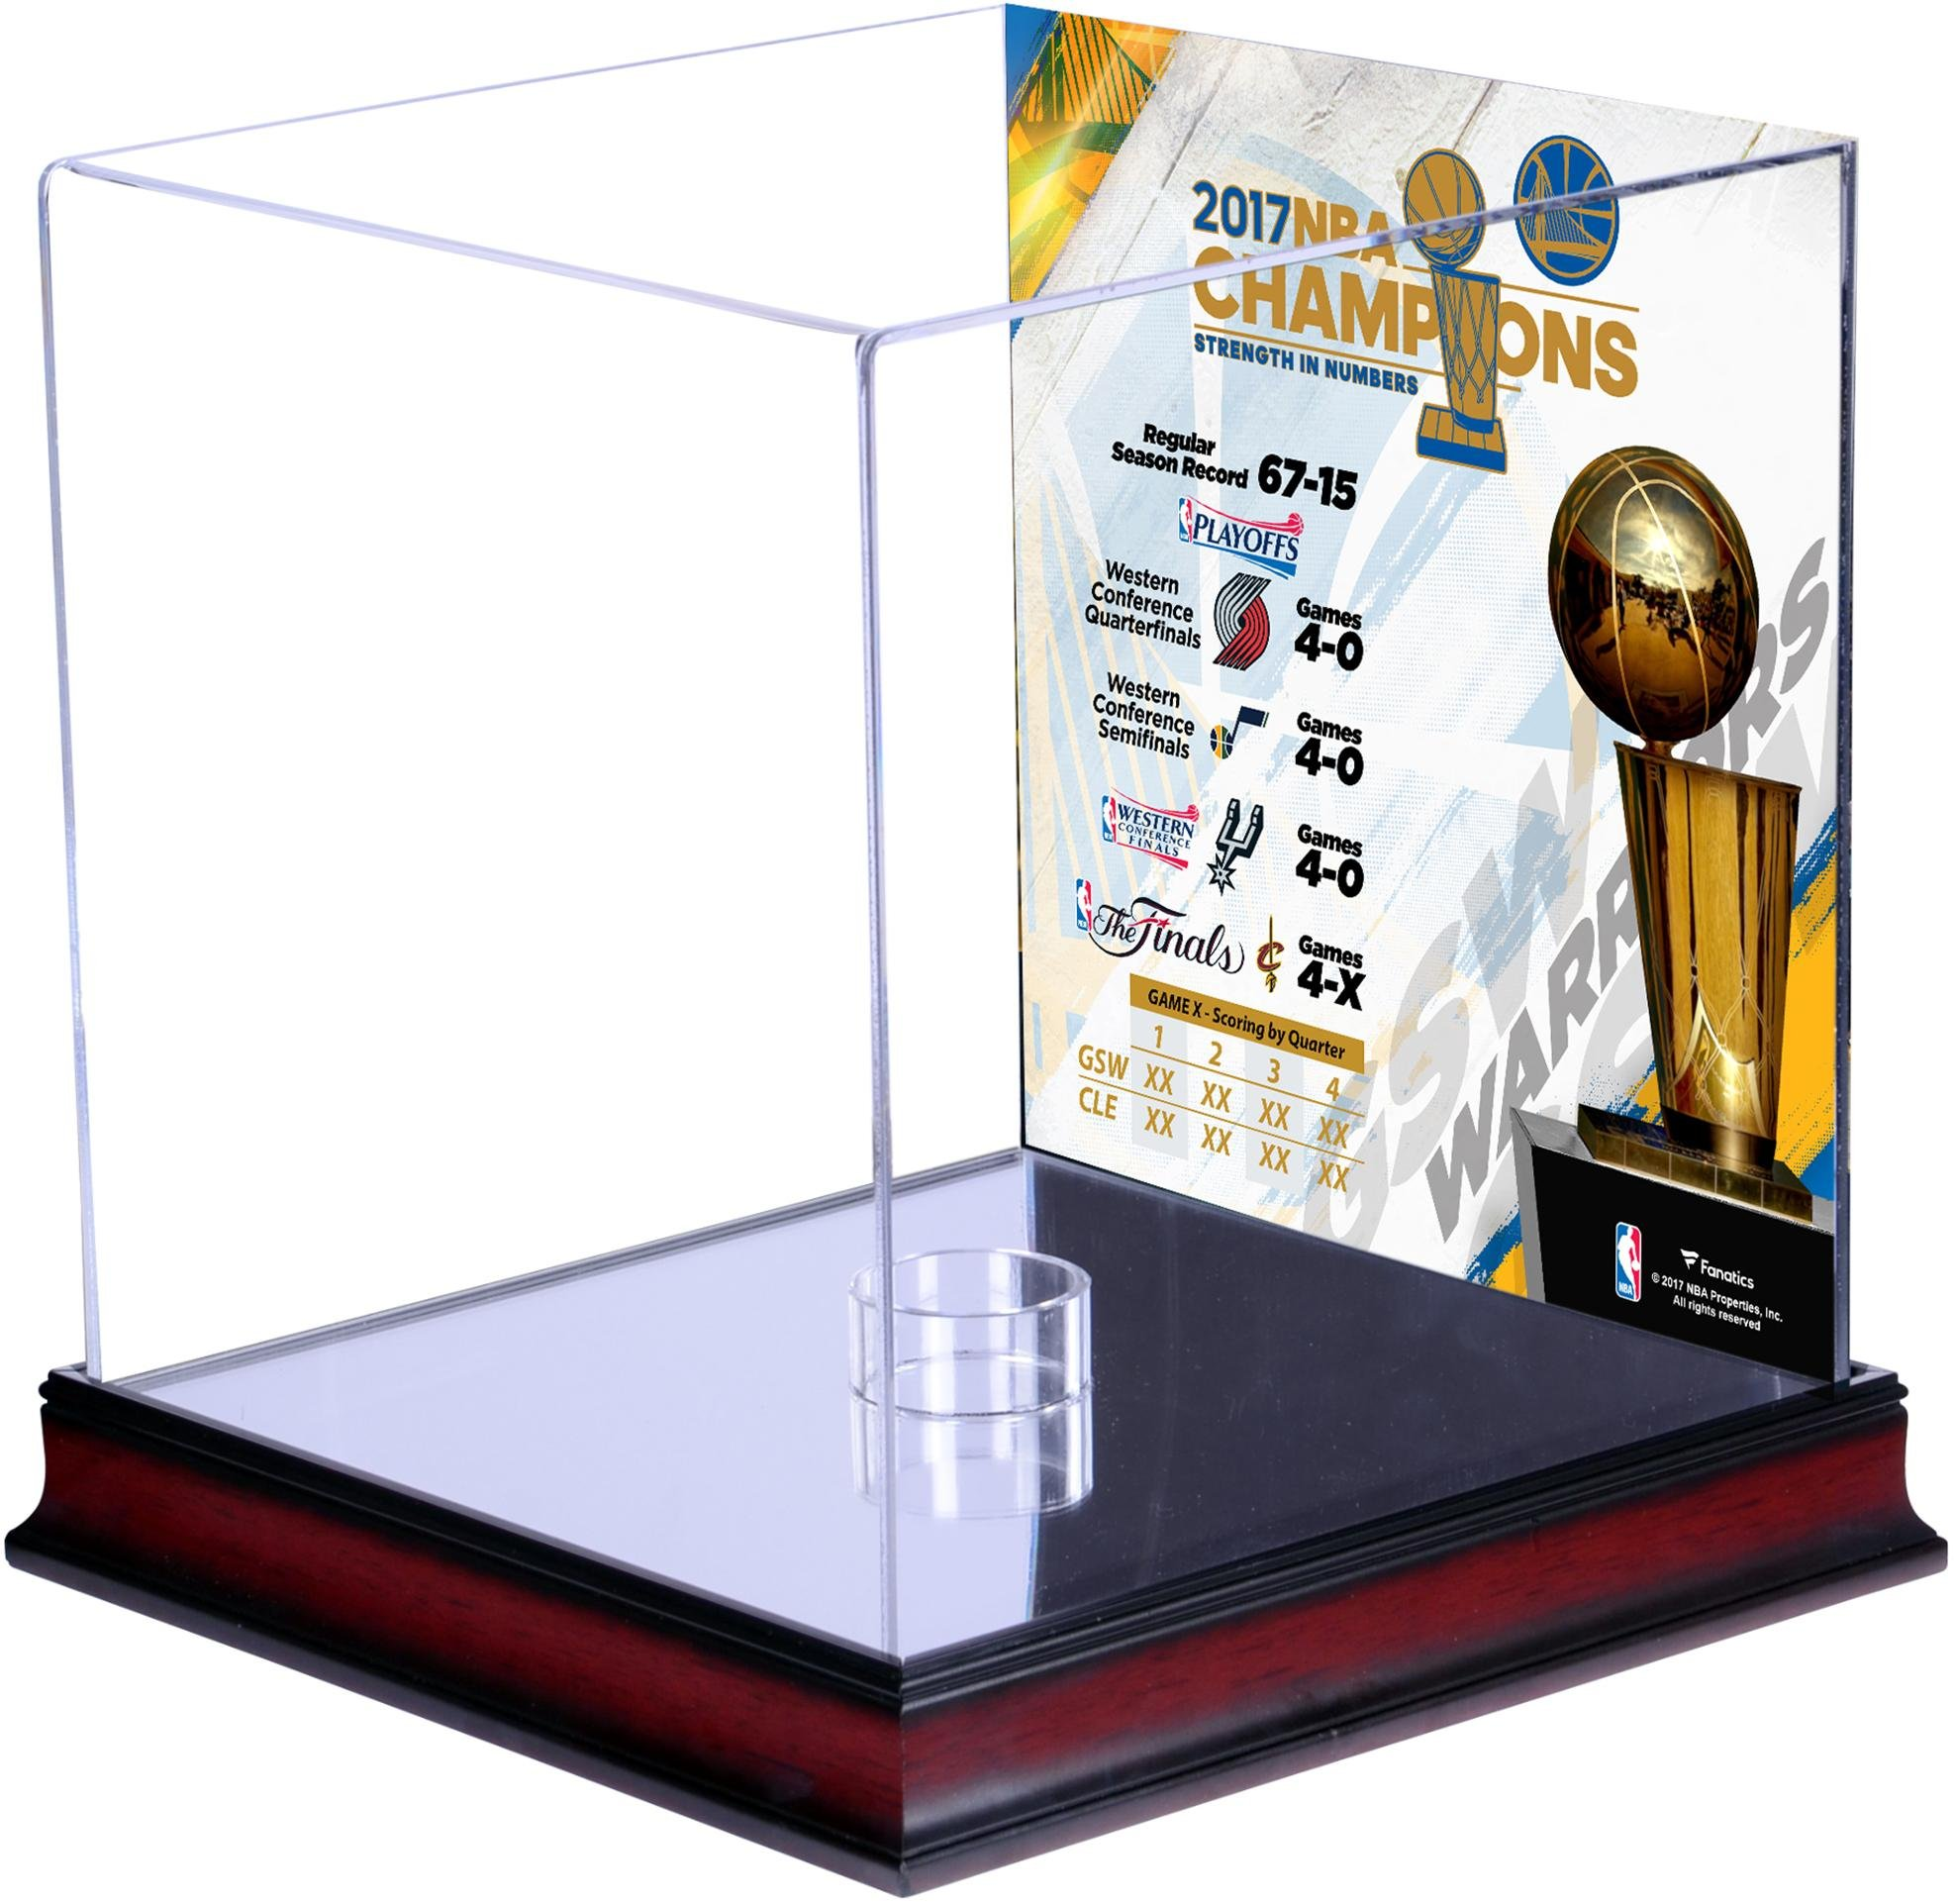 Golden State Warriors 2017 NBA Finals Champions Mahogany Basketball Display Case with Sublimated Collage - Fanatics Authentic Certified